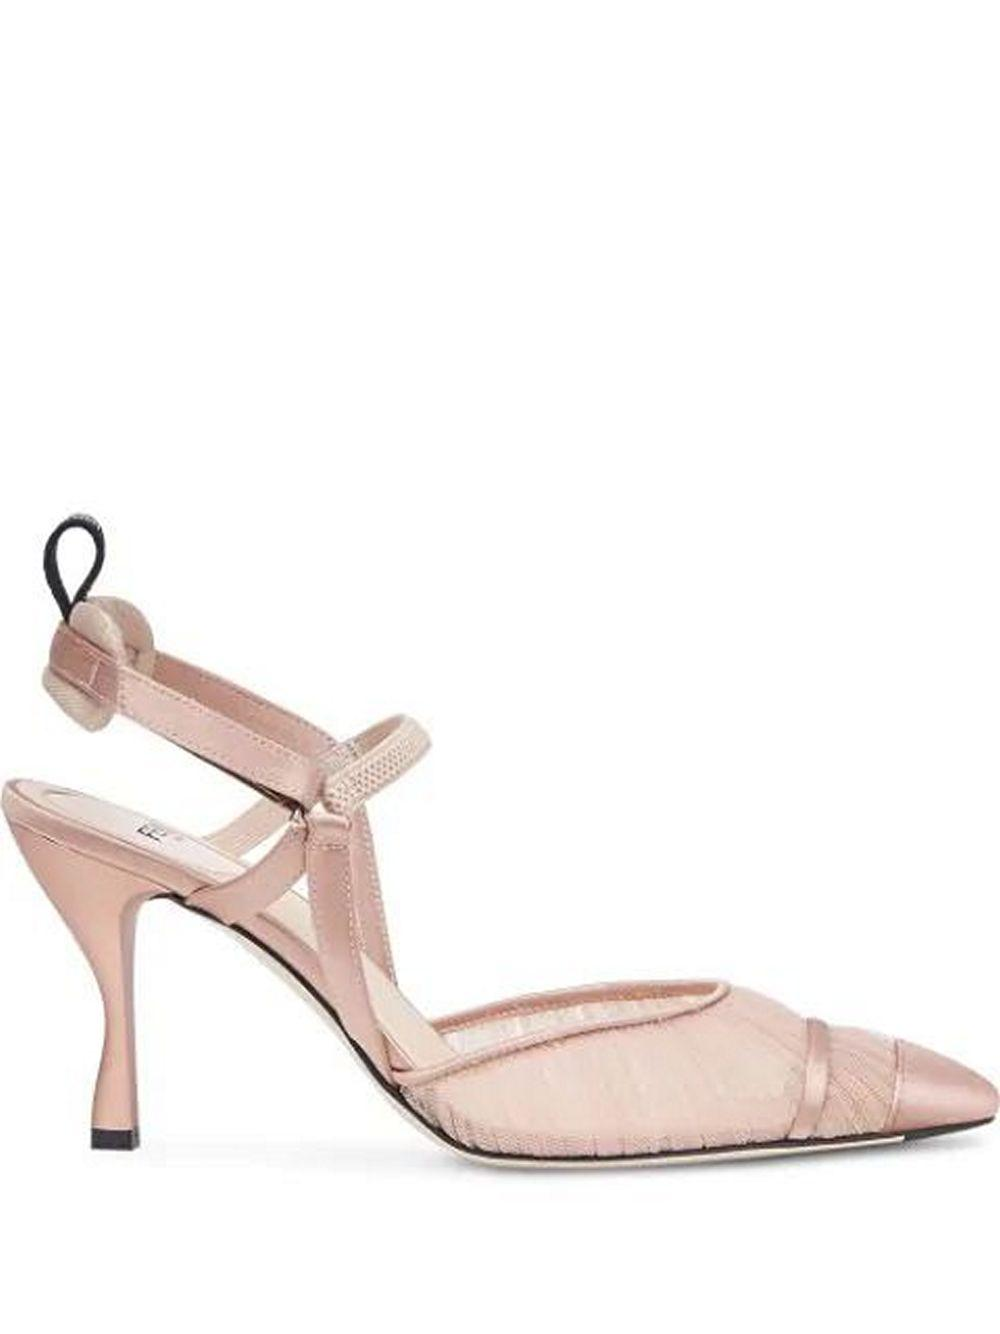 Rouched Tulle 60mm Evening Slingback Heel